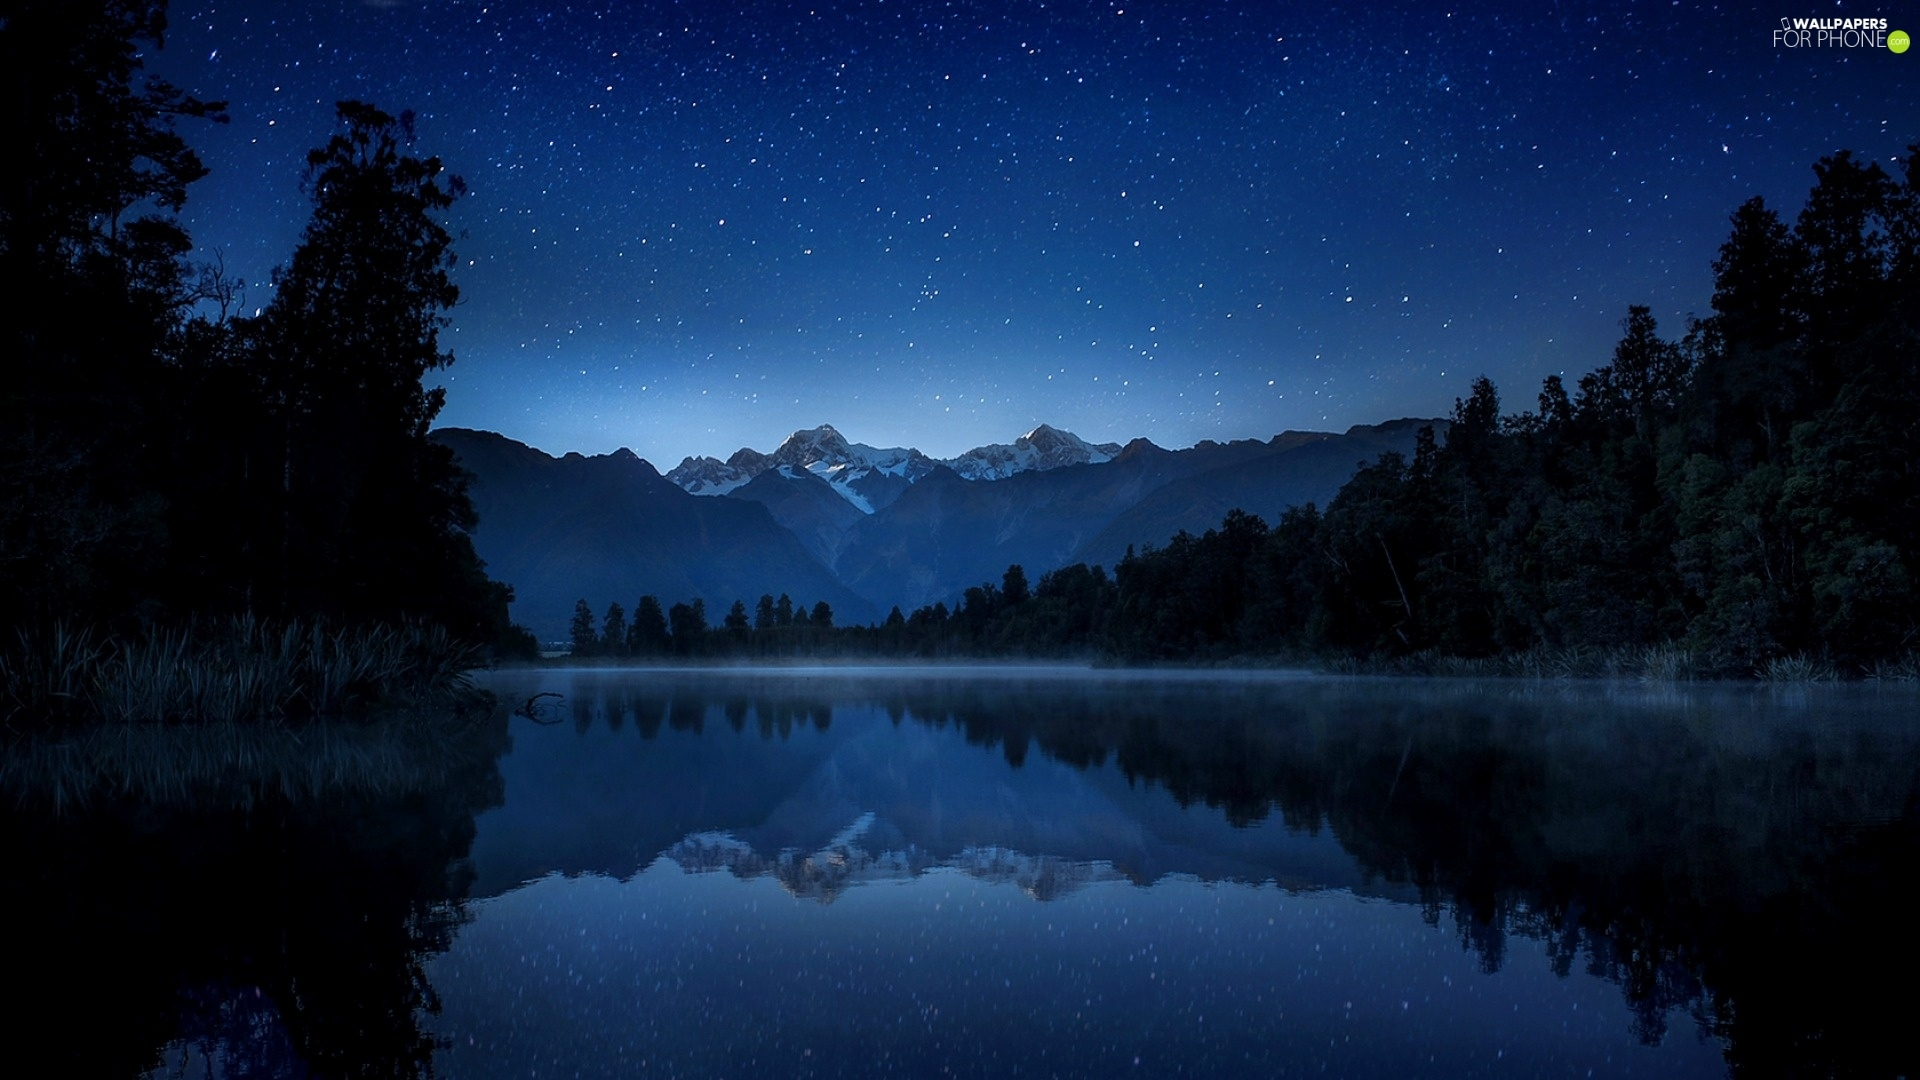 Android Animated Wallpaper Tutorial Fog Night Lake Forest Mountains For Phone Wallpapers